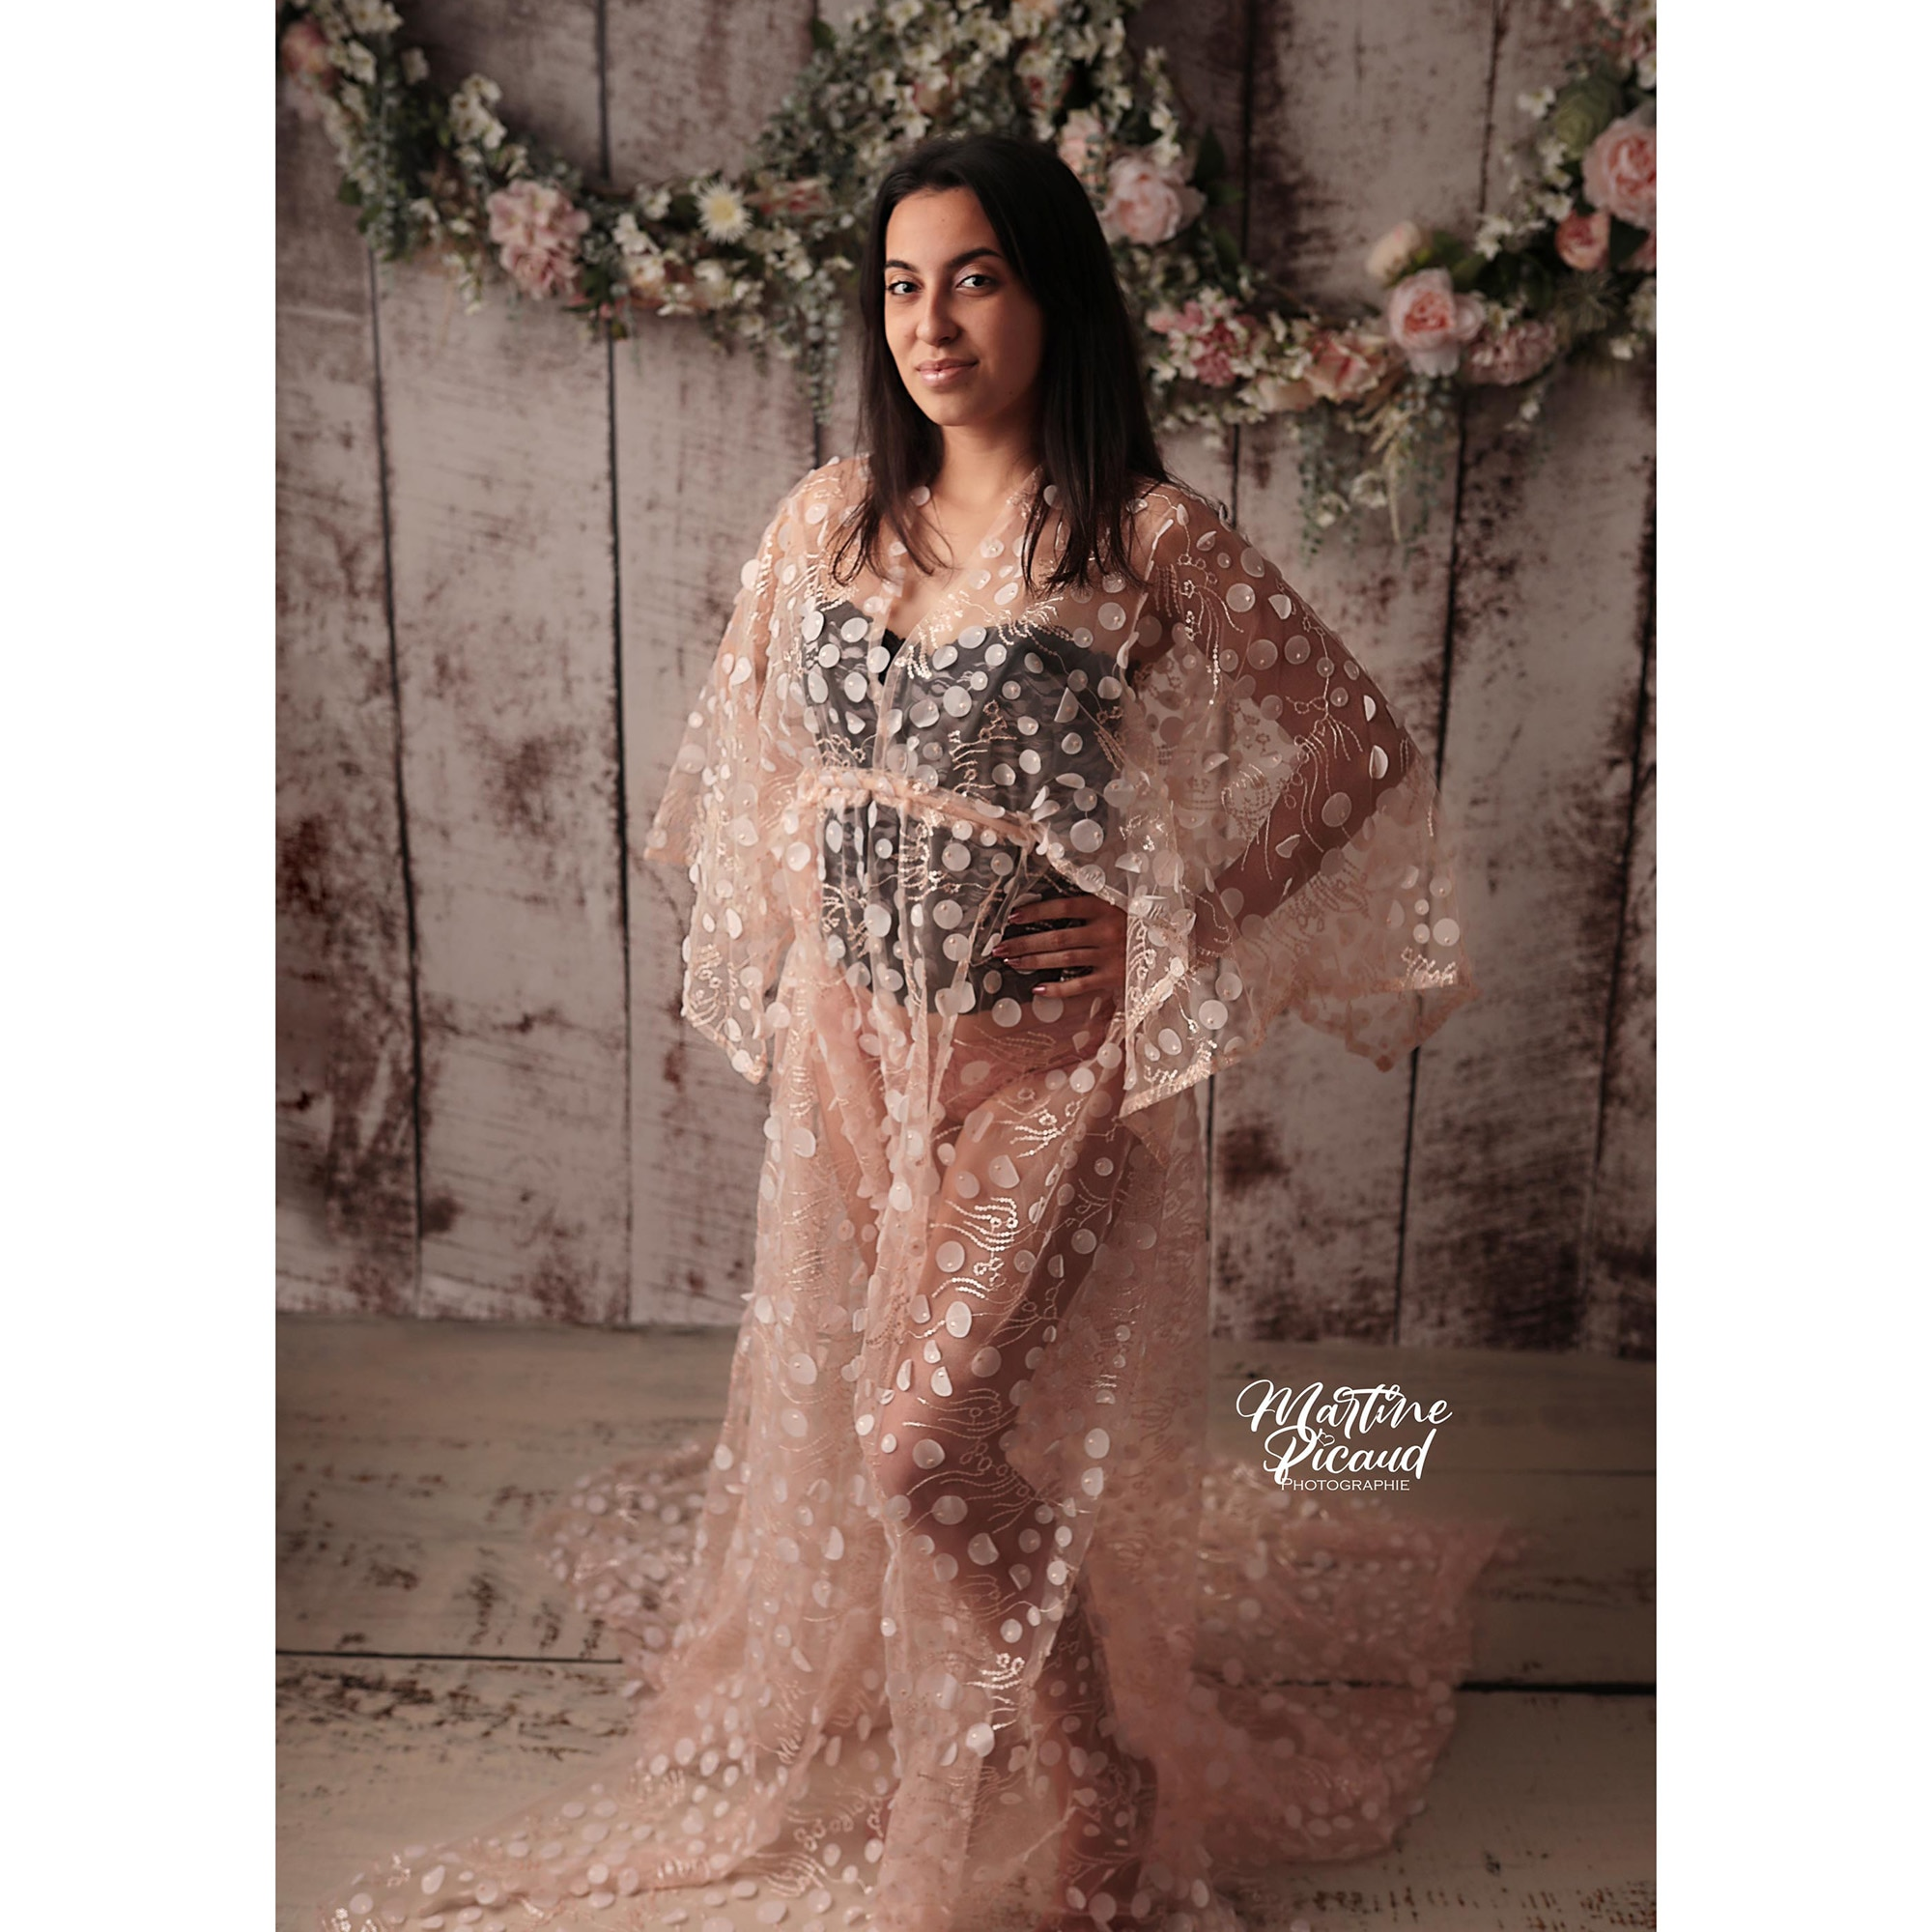 Boho Tulle Photography Sparkly Dress Maternity Robe Pregnant Kaftan Photo Shoot Baby Shower Evening Party Prom Women Couture